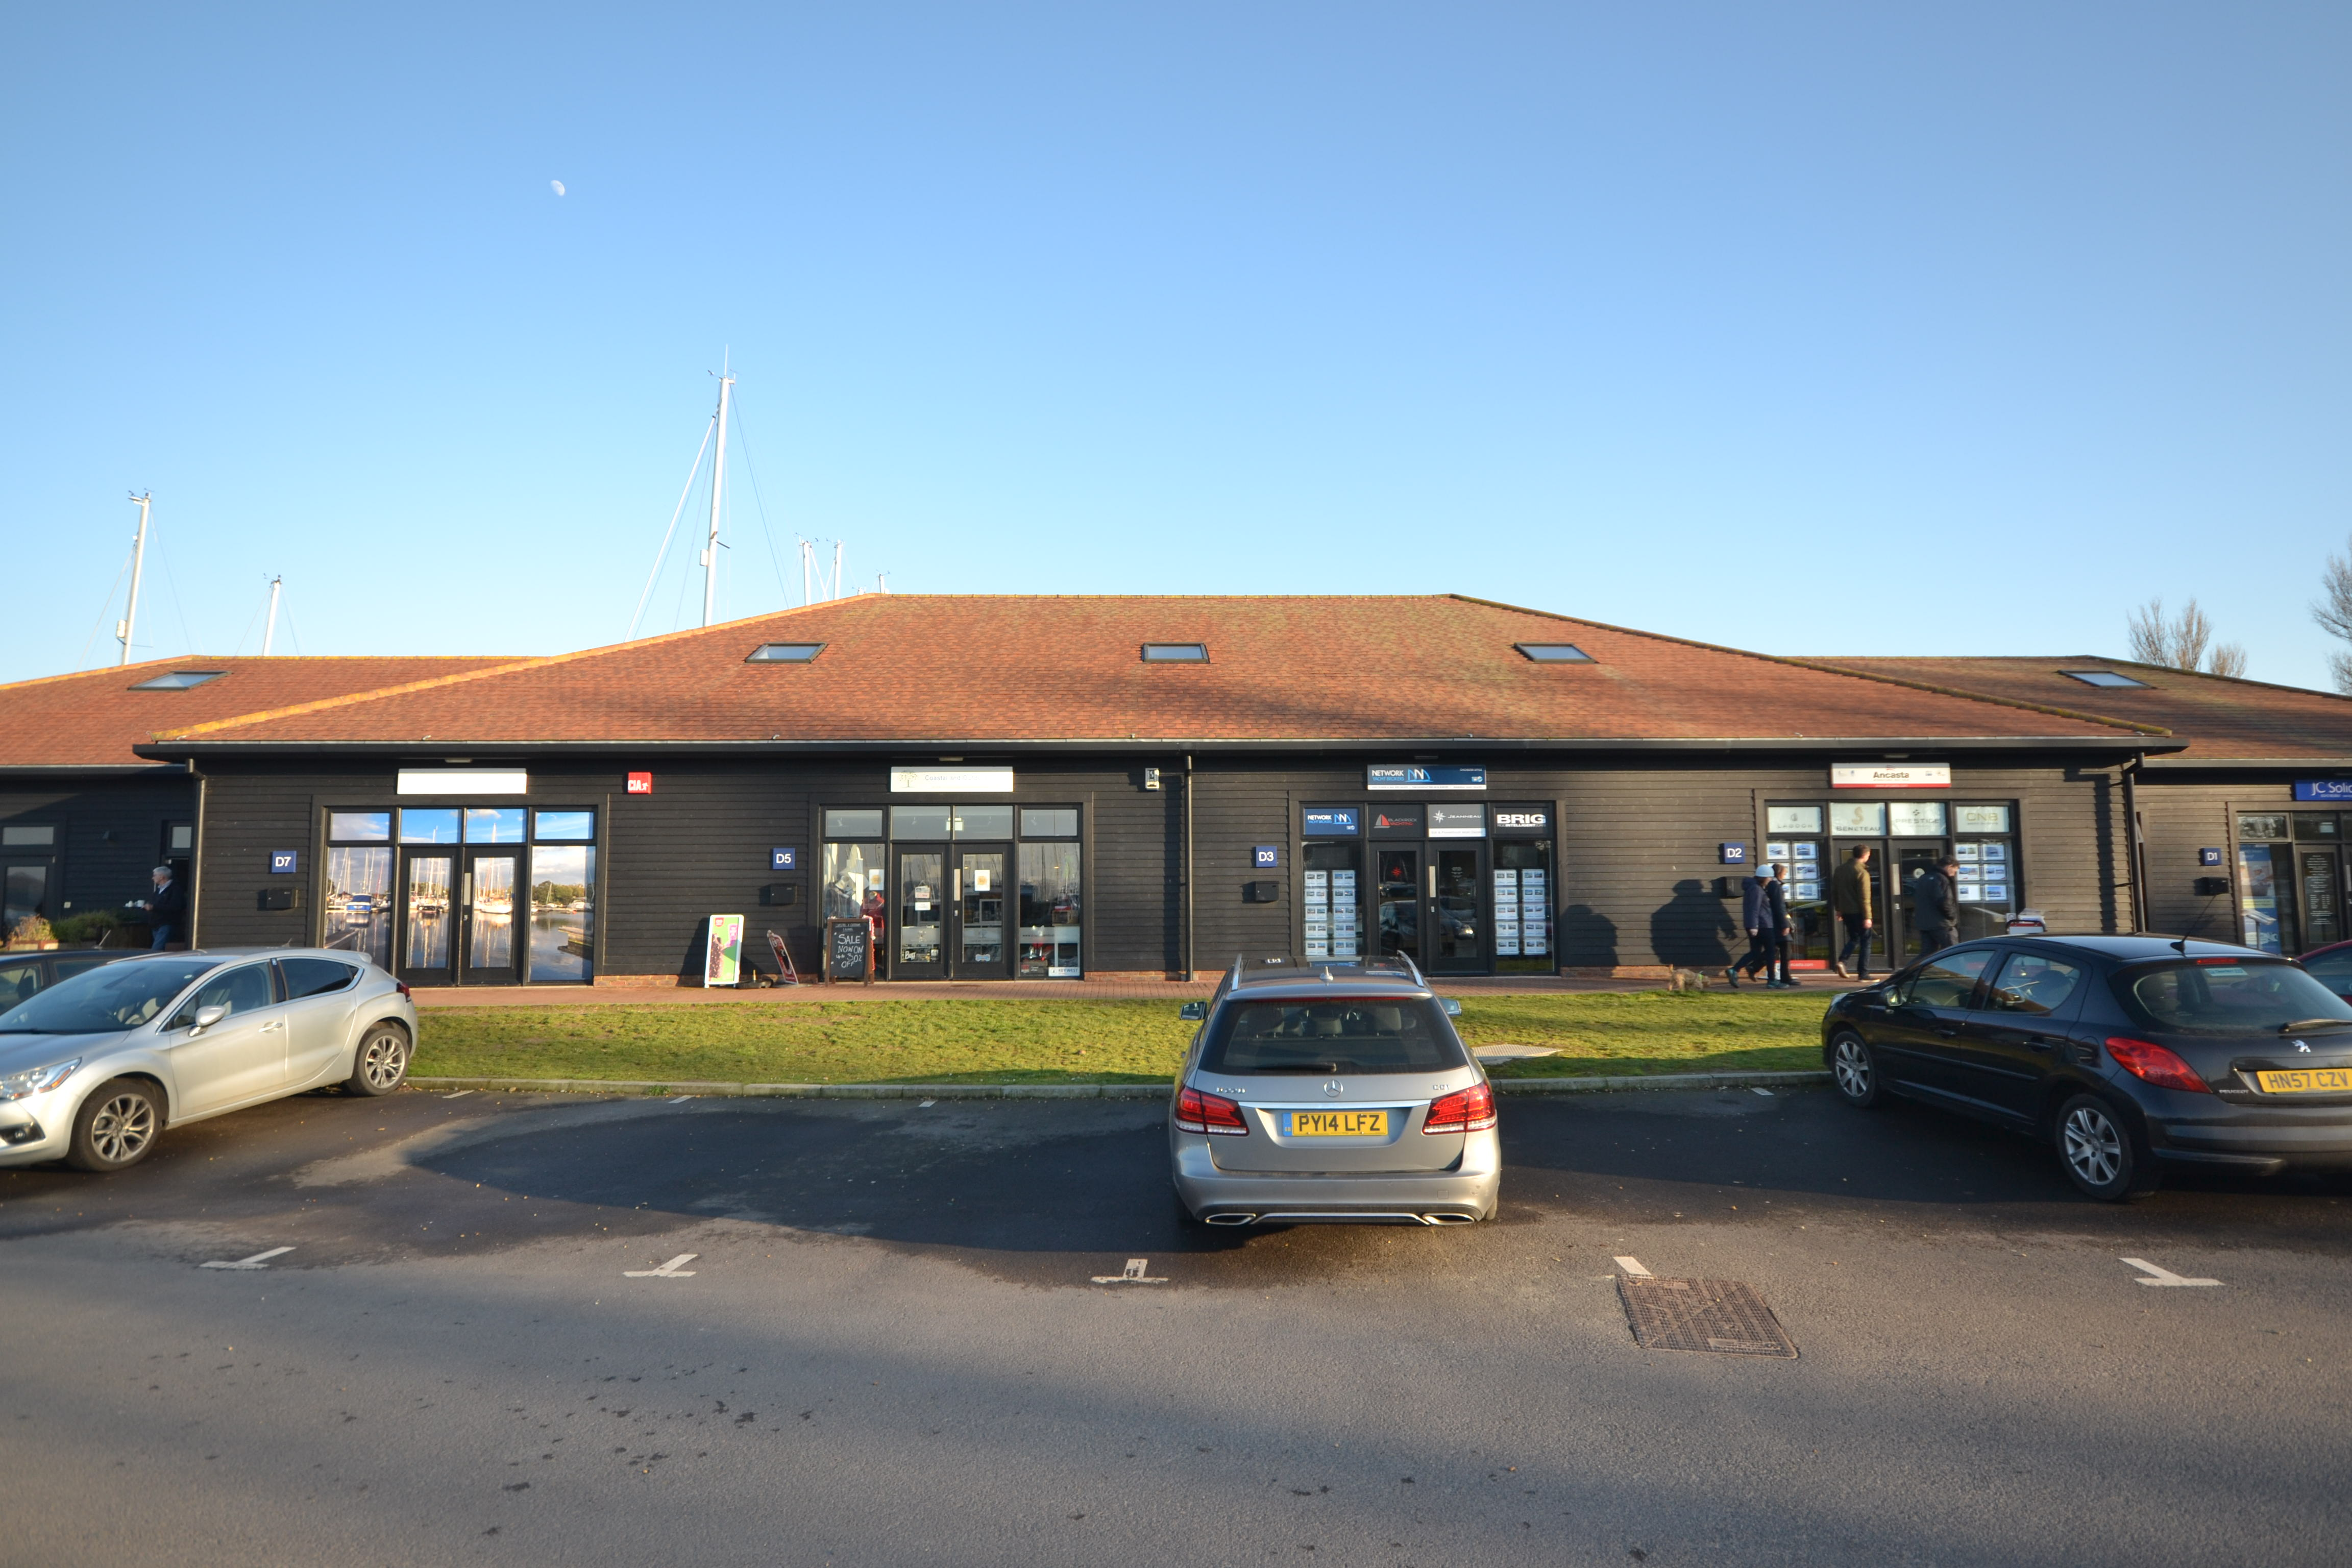 Distribution Warehouse for rent in Chichester. From Henry Adams Commercial